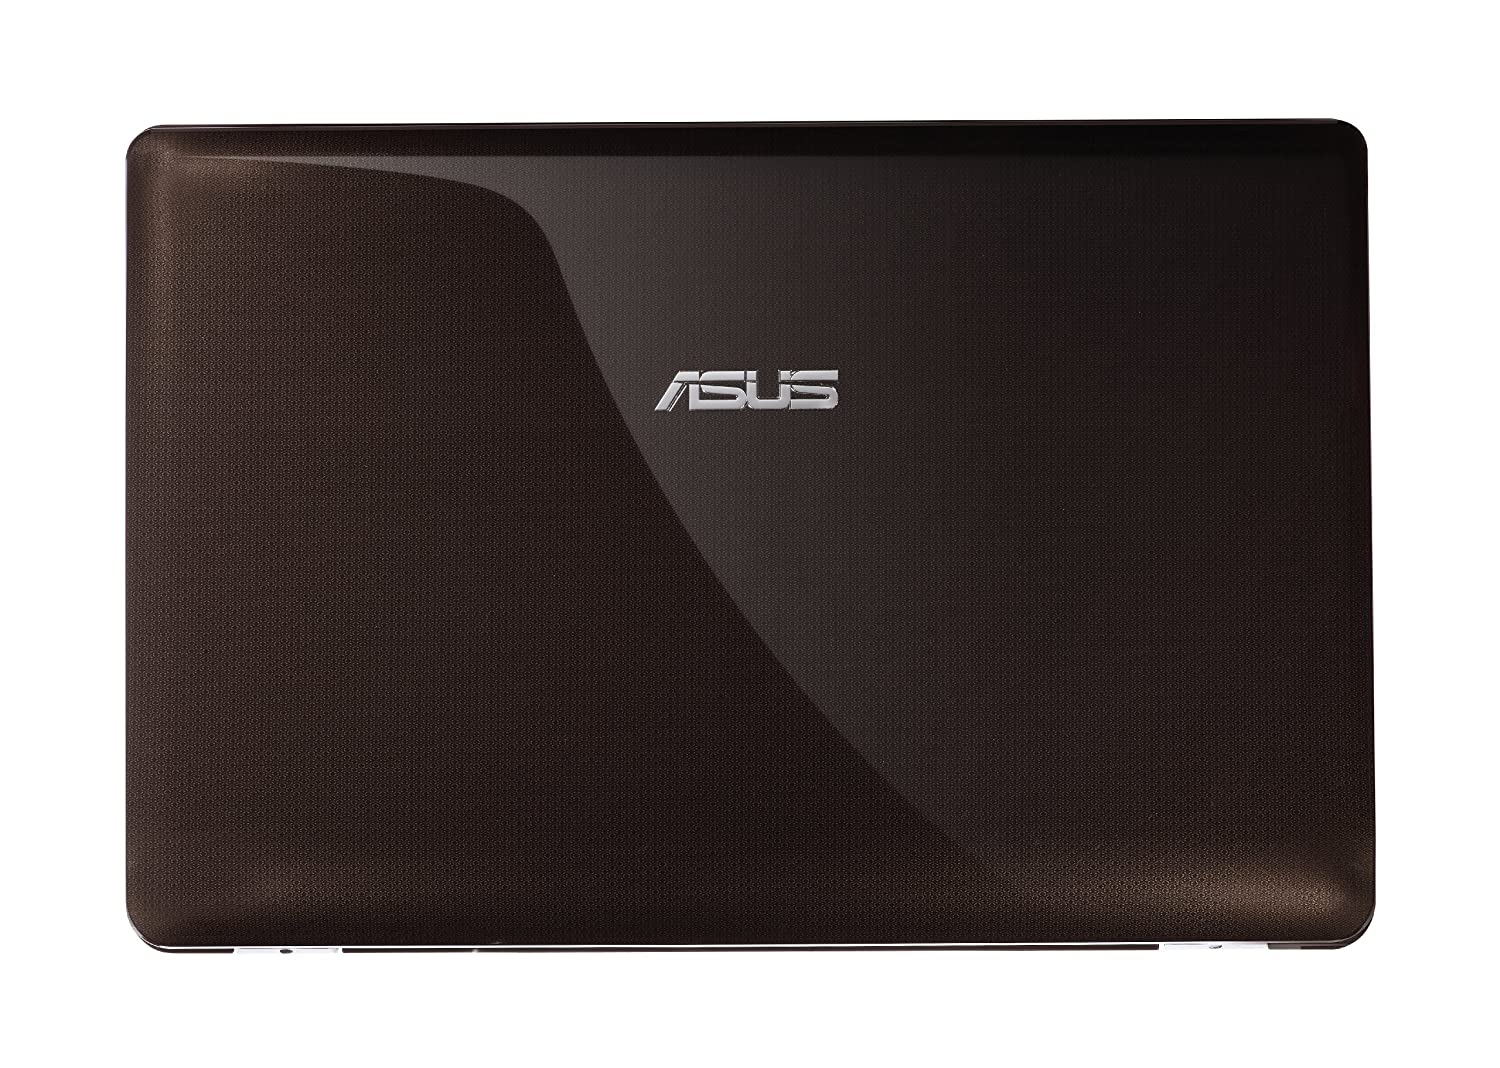 ASUS K72JR-C1 TREIBER WINDOWS 7